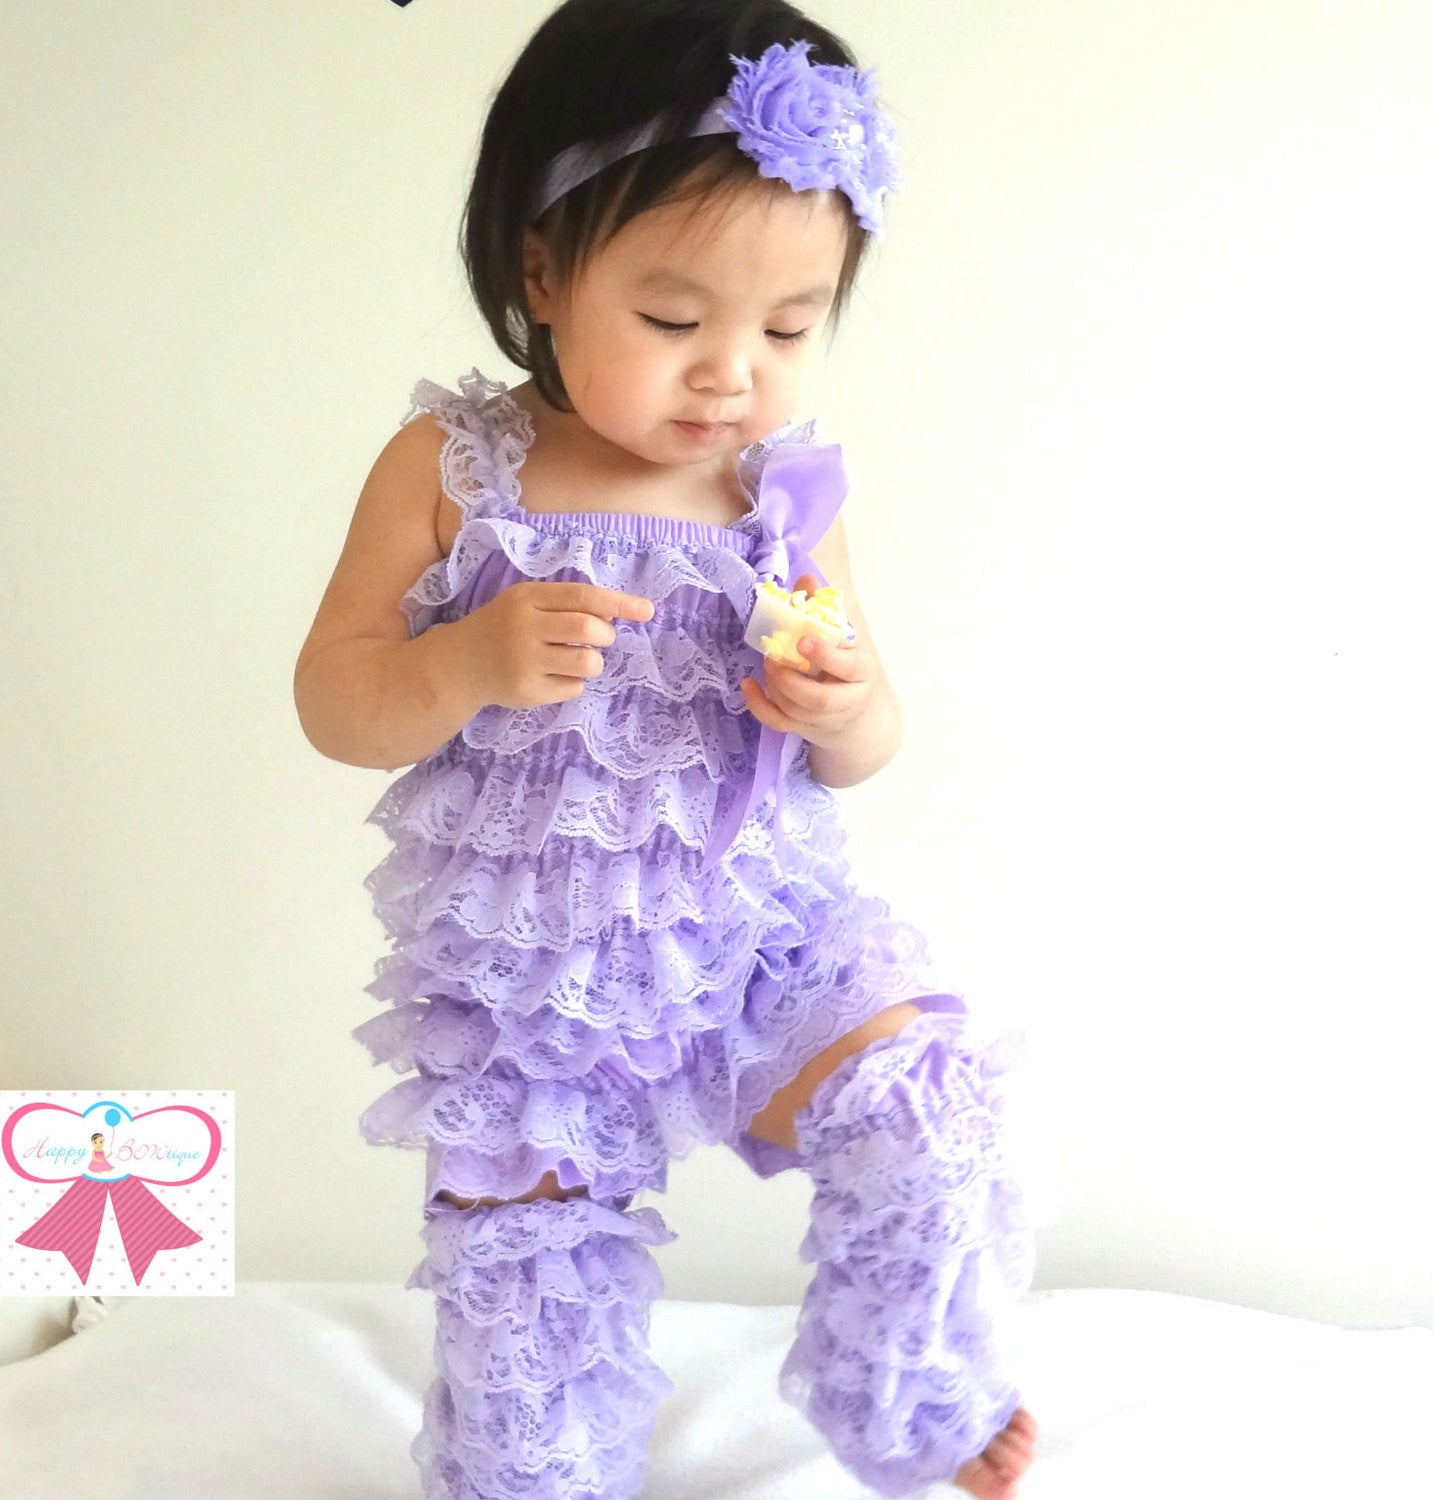 Baby Girl Lavender Petti Lace Romper ~Girl Easter Romper - Happy BOWtique -  children s clothing 2d98d5182e15